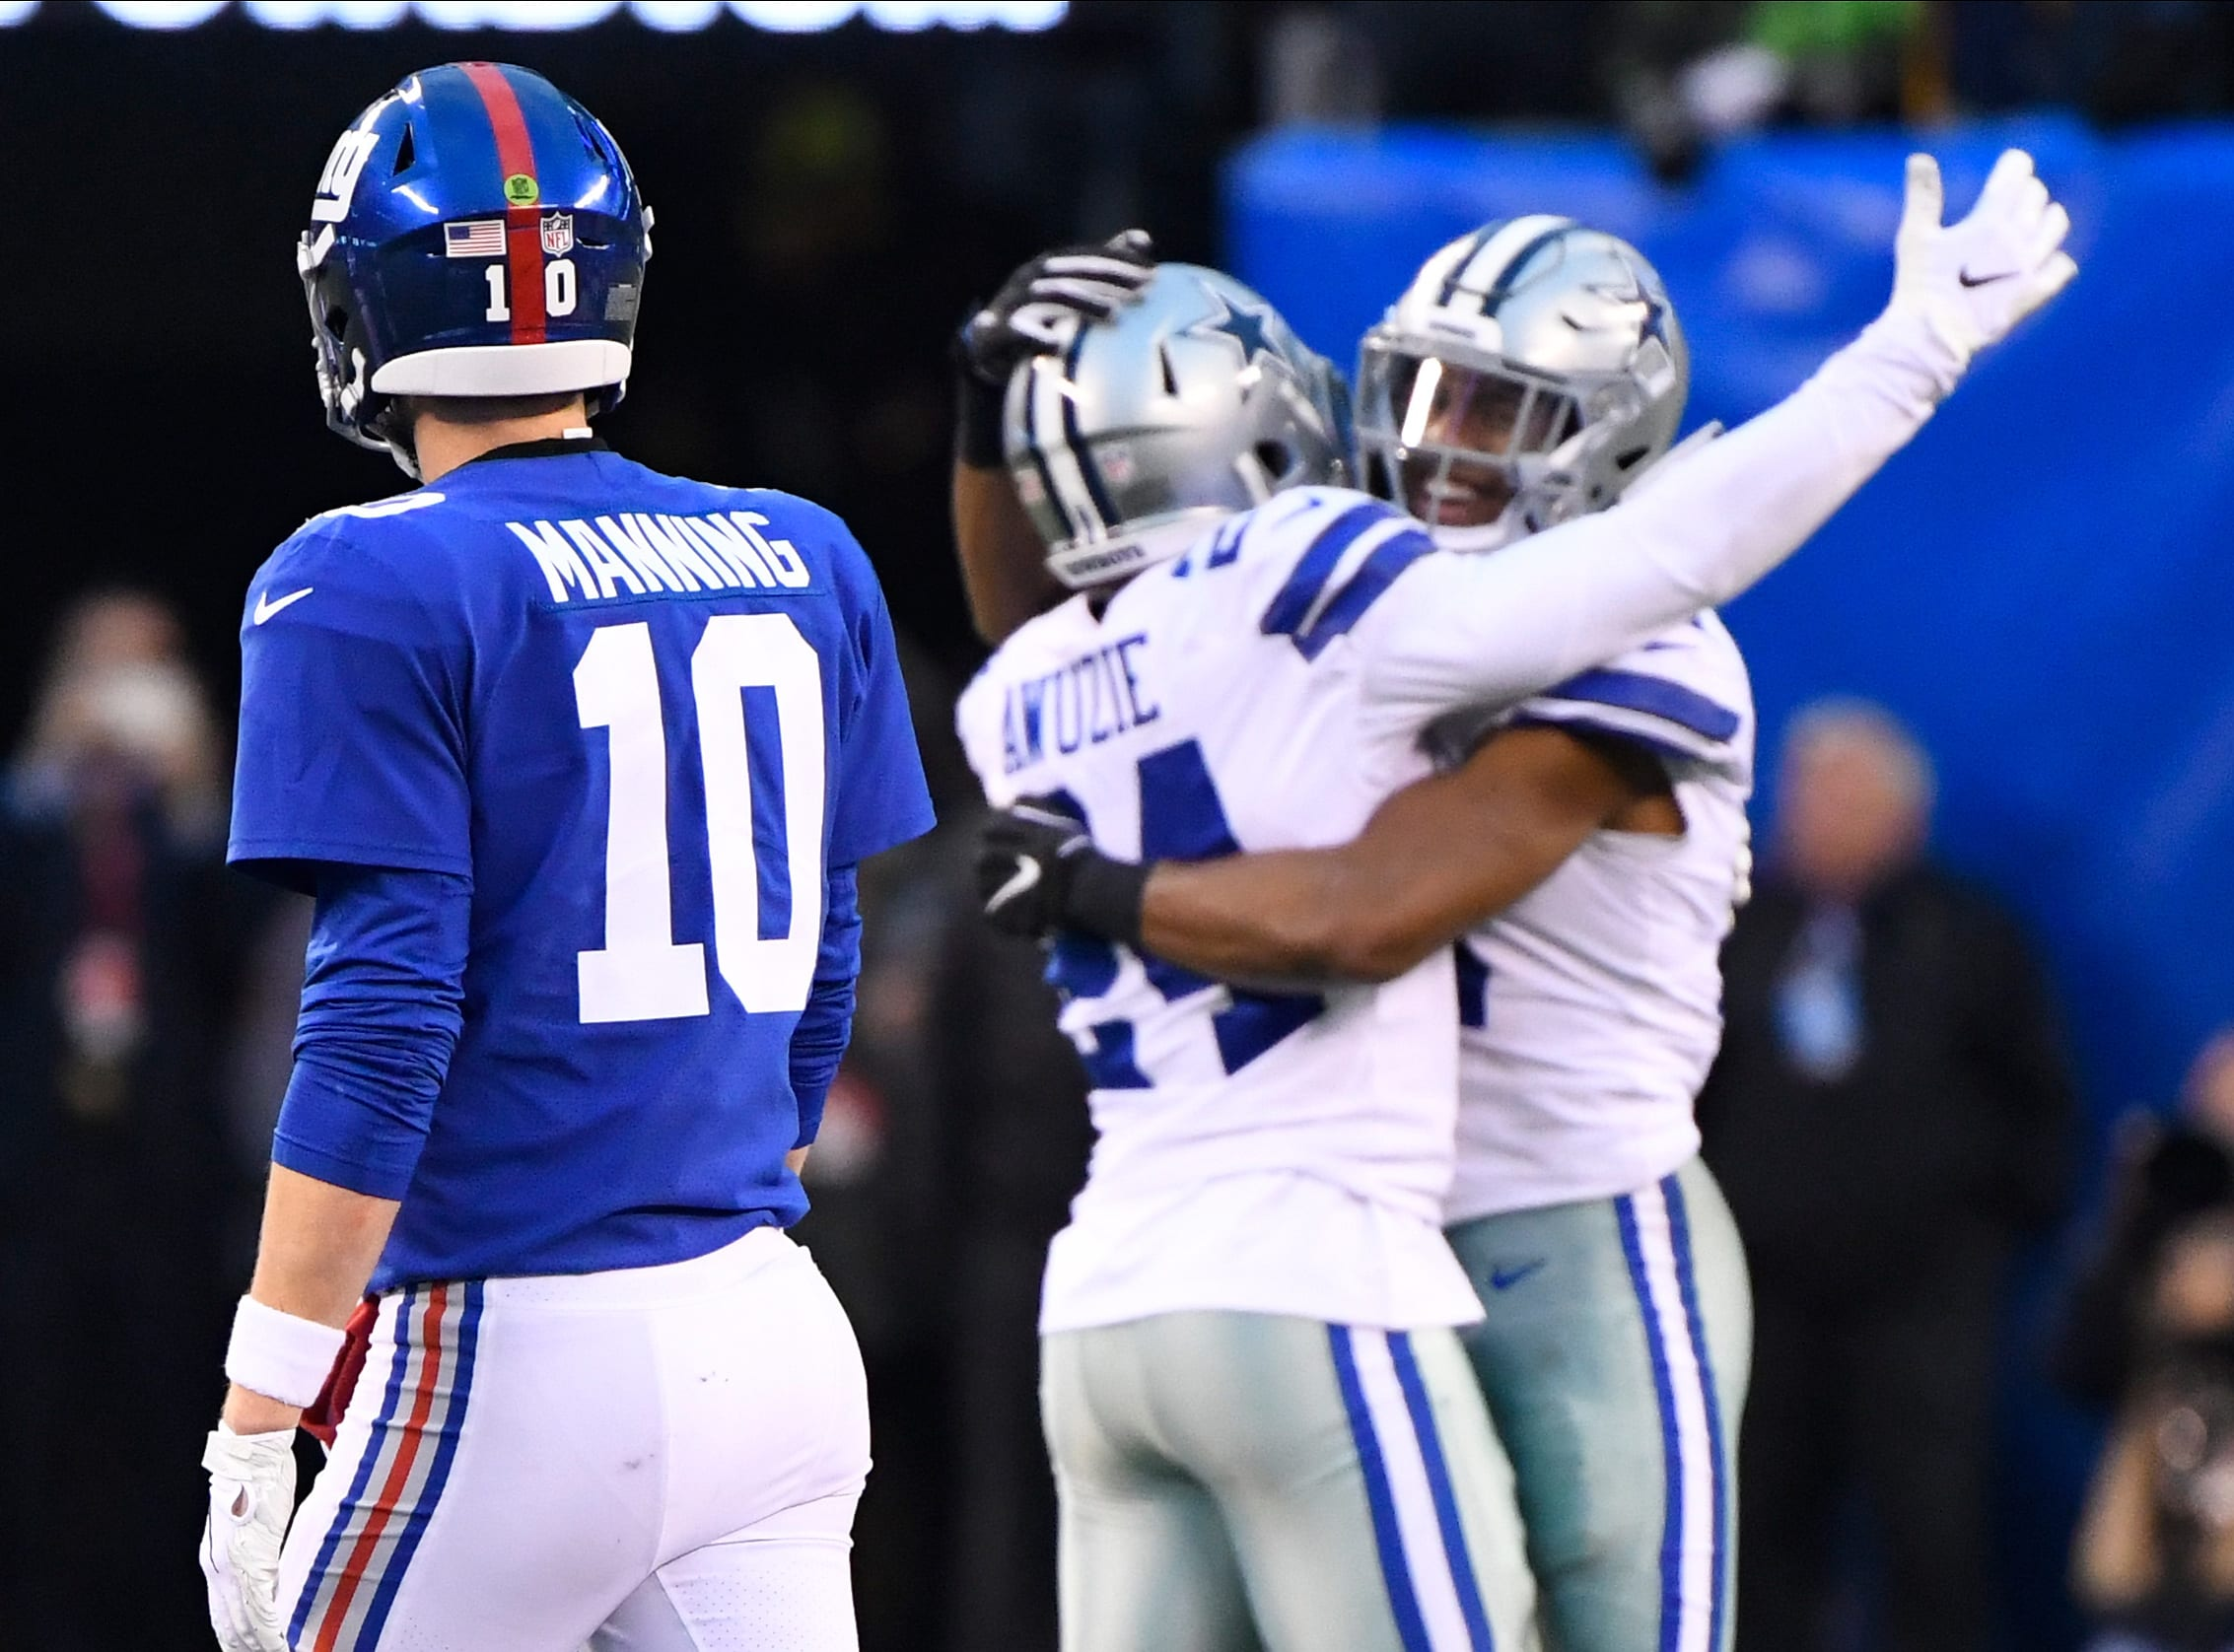 Cowboys beat Giants, will face Seahawks in Wildcard round